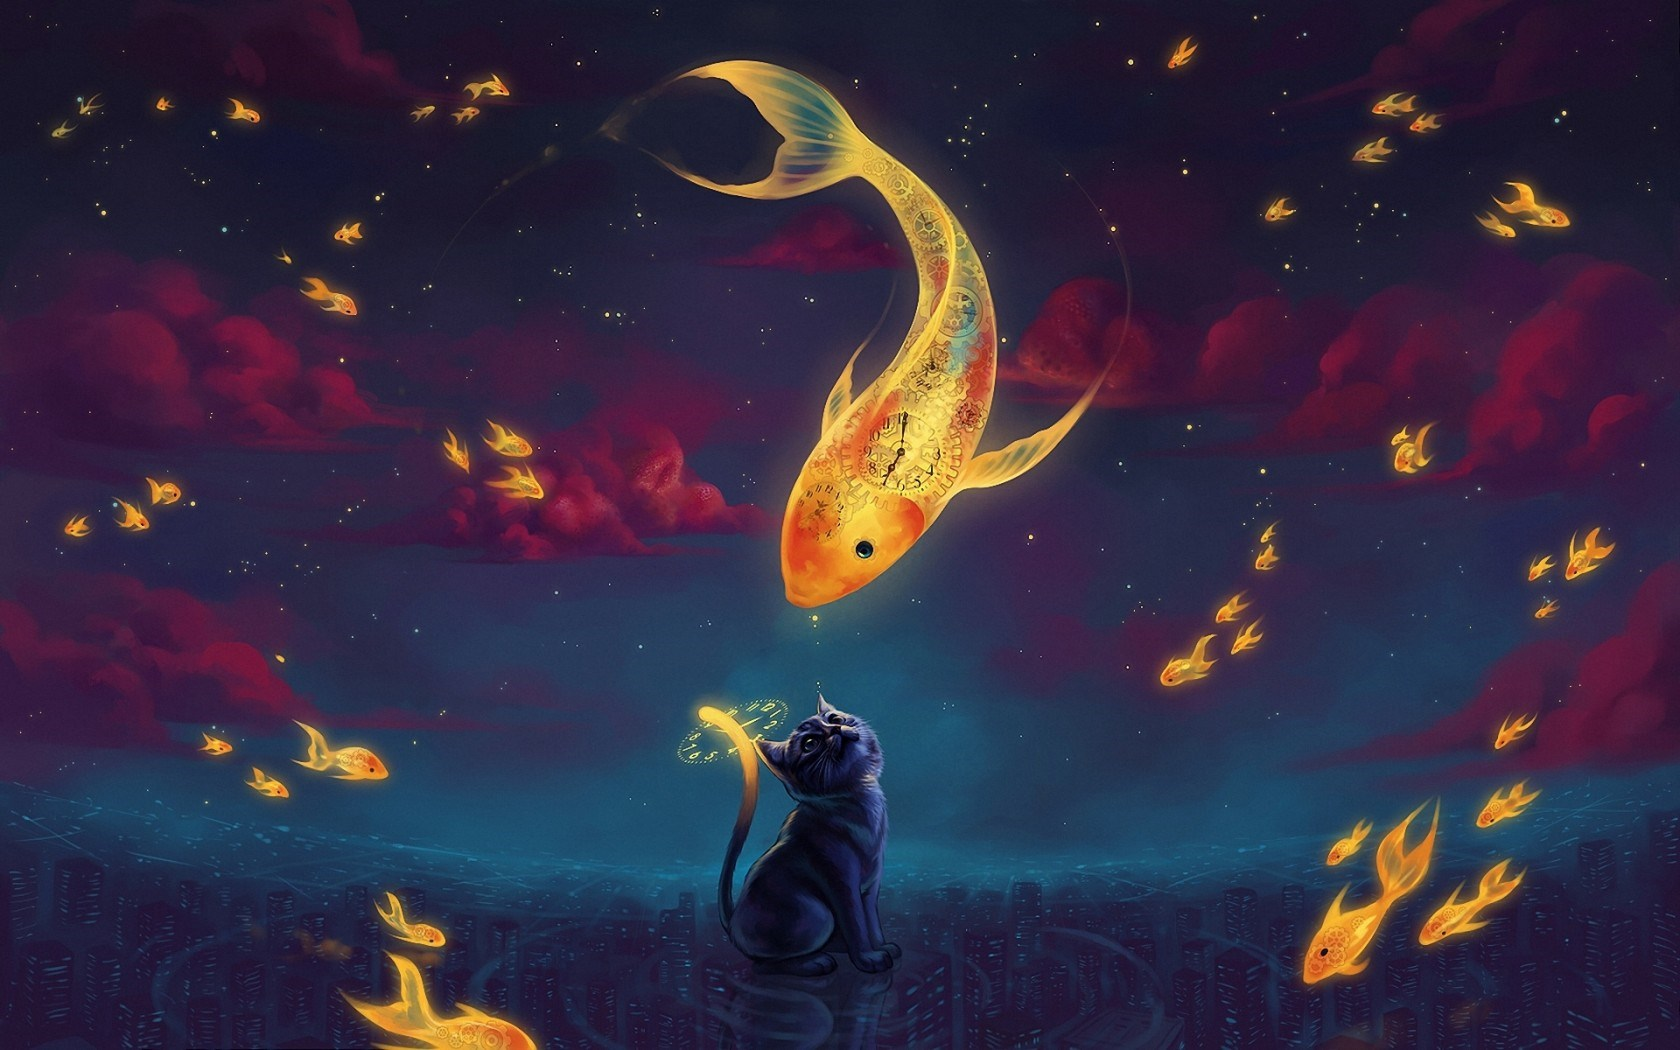 Art Fantasy Goldfish Kitten Night Stars Hd Wallpaper